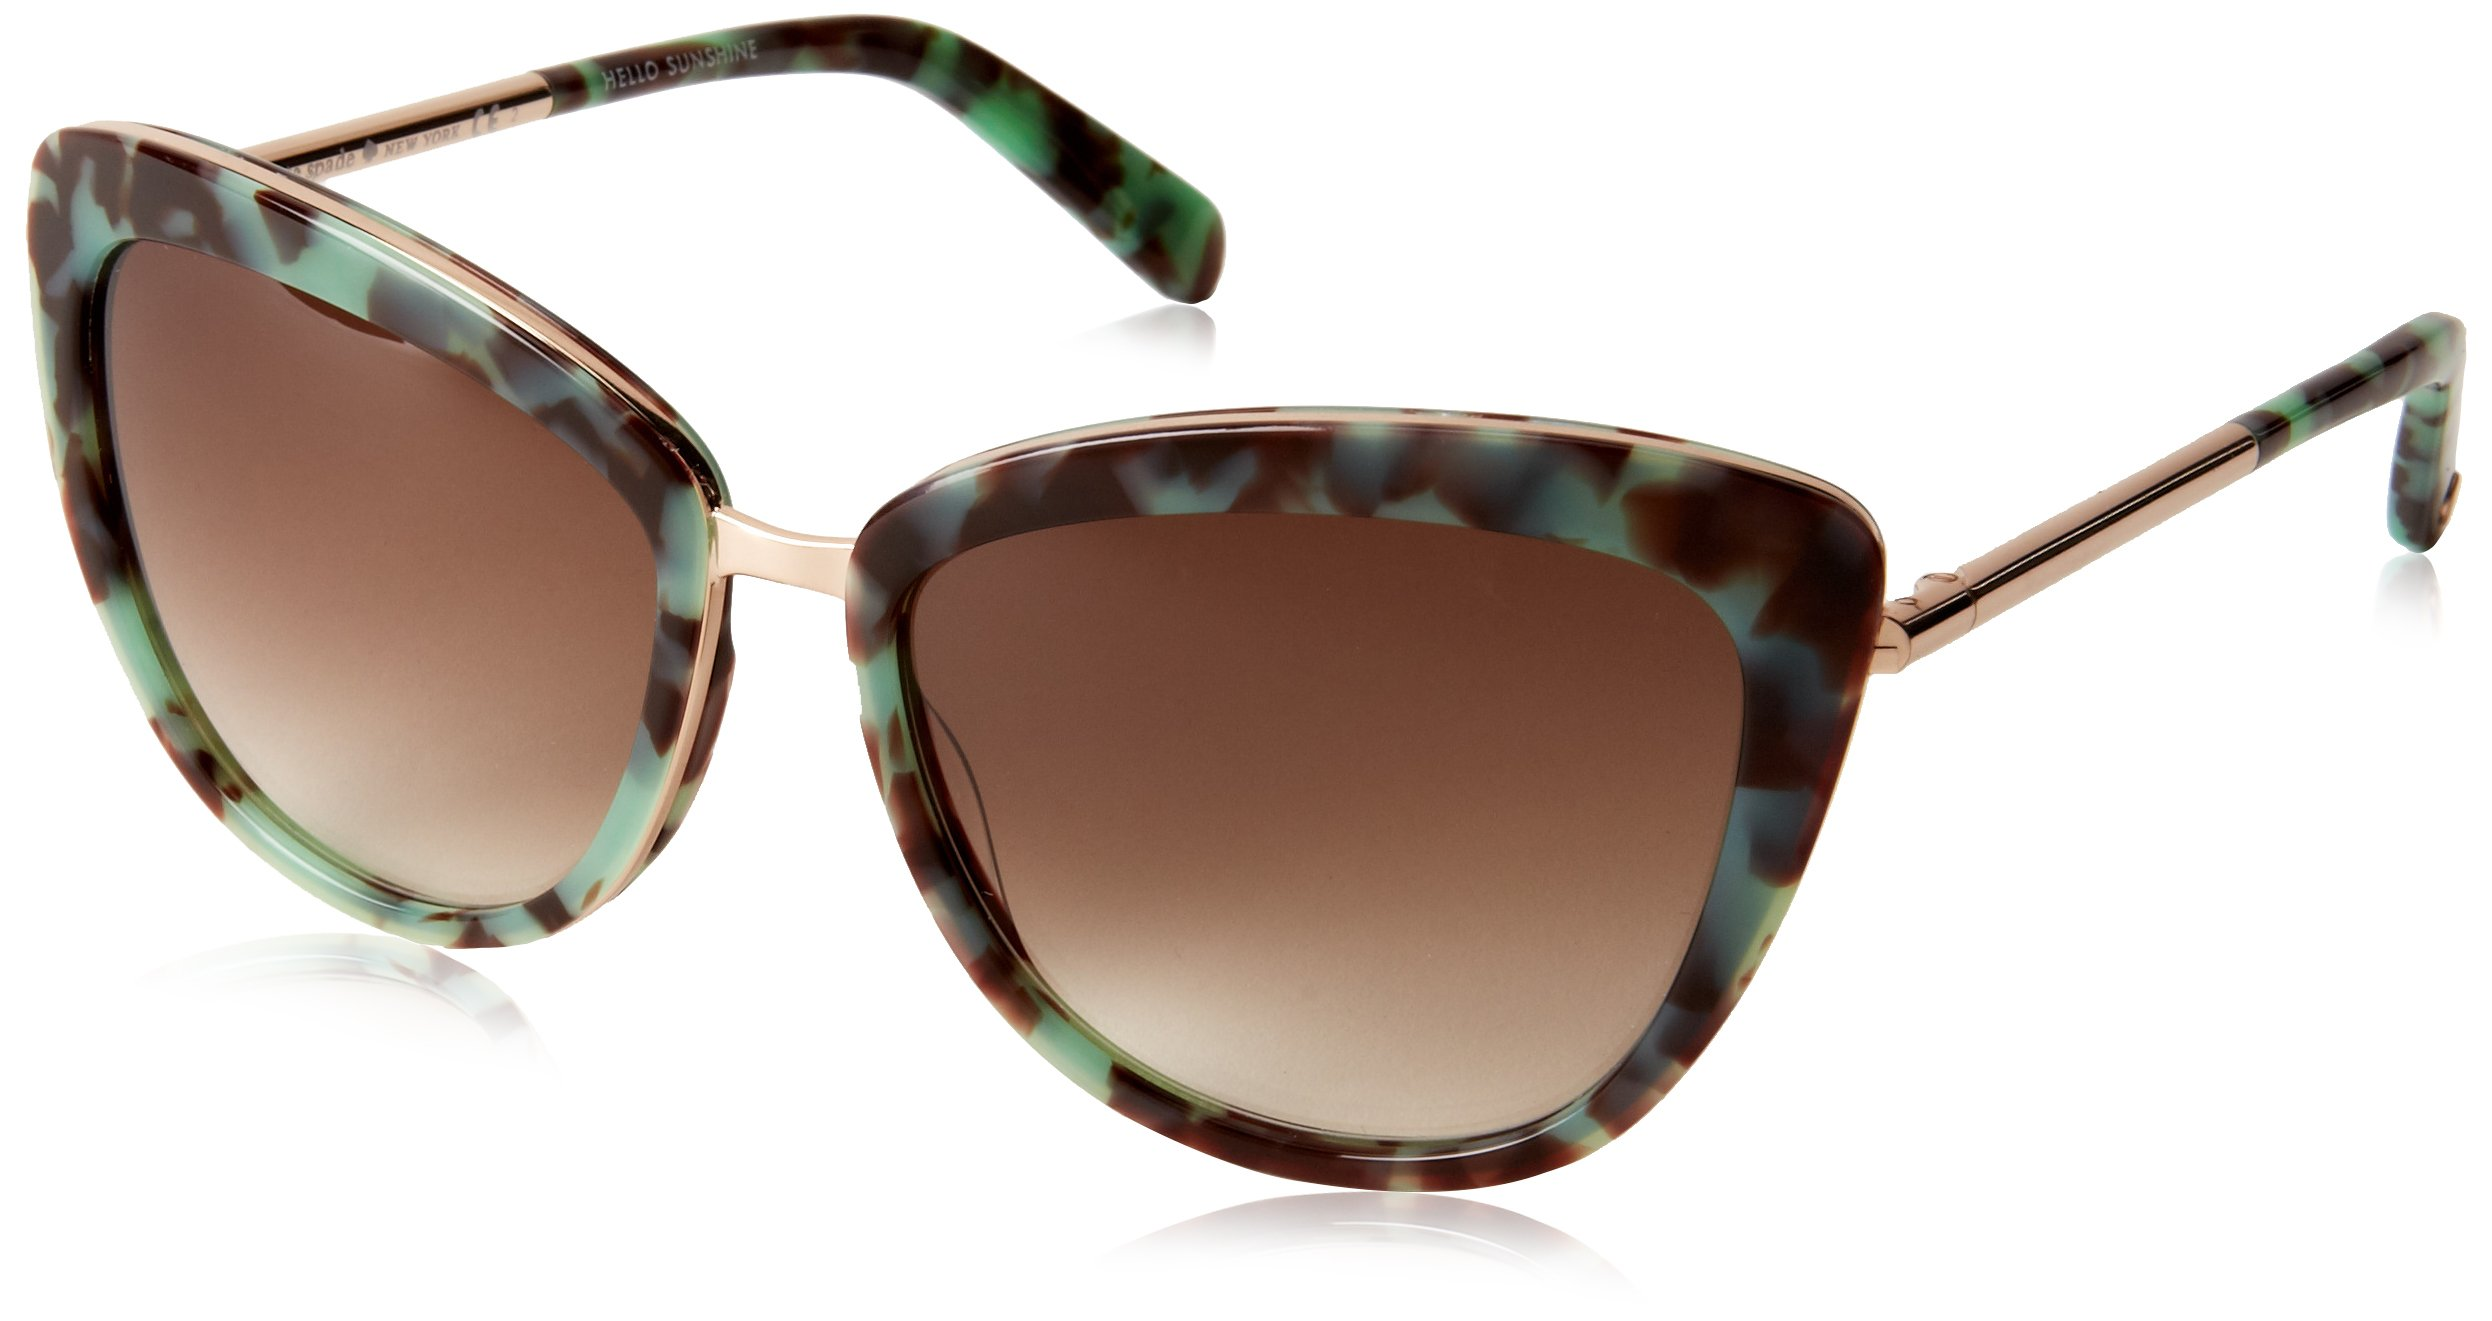 Kate Spade Women's Kandi Cateye Sunglasses, Mint Tortoise & Brown Gradient, 56 mm by Kate Spade New York